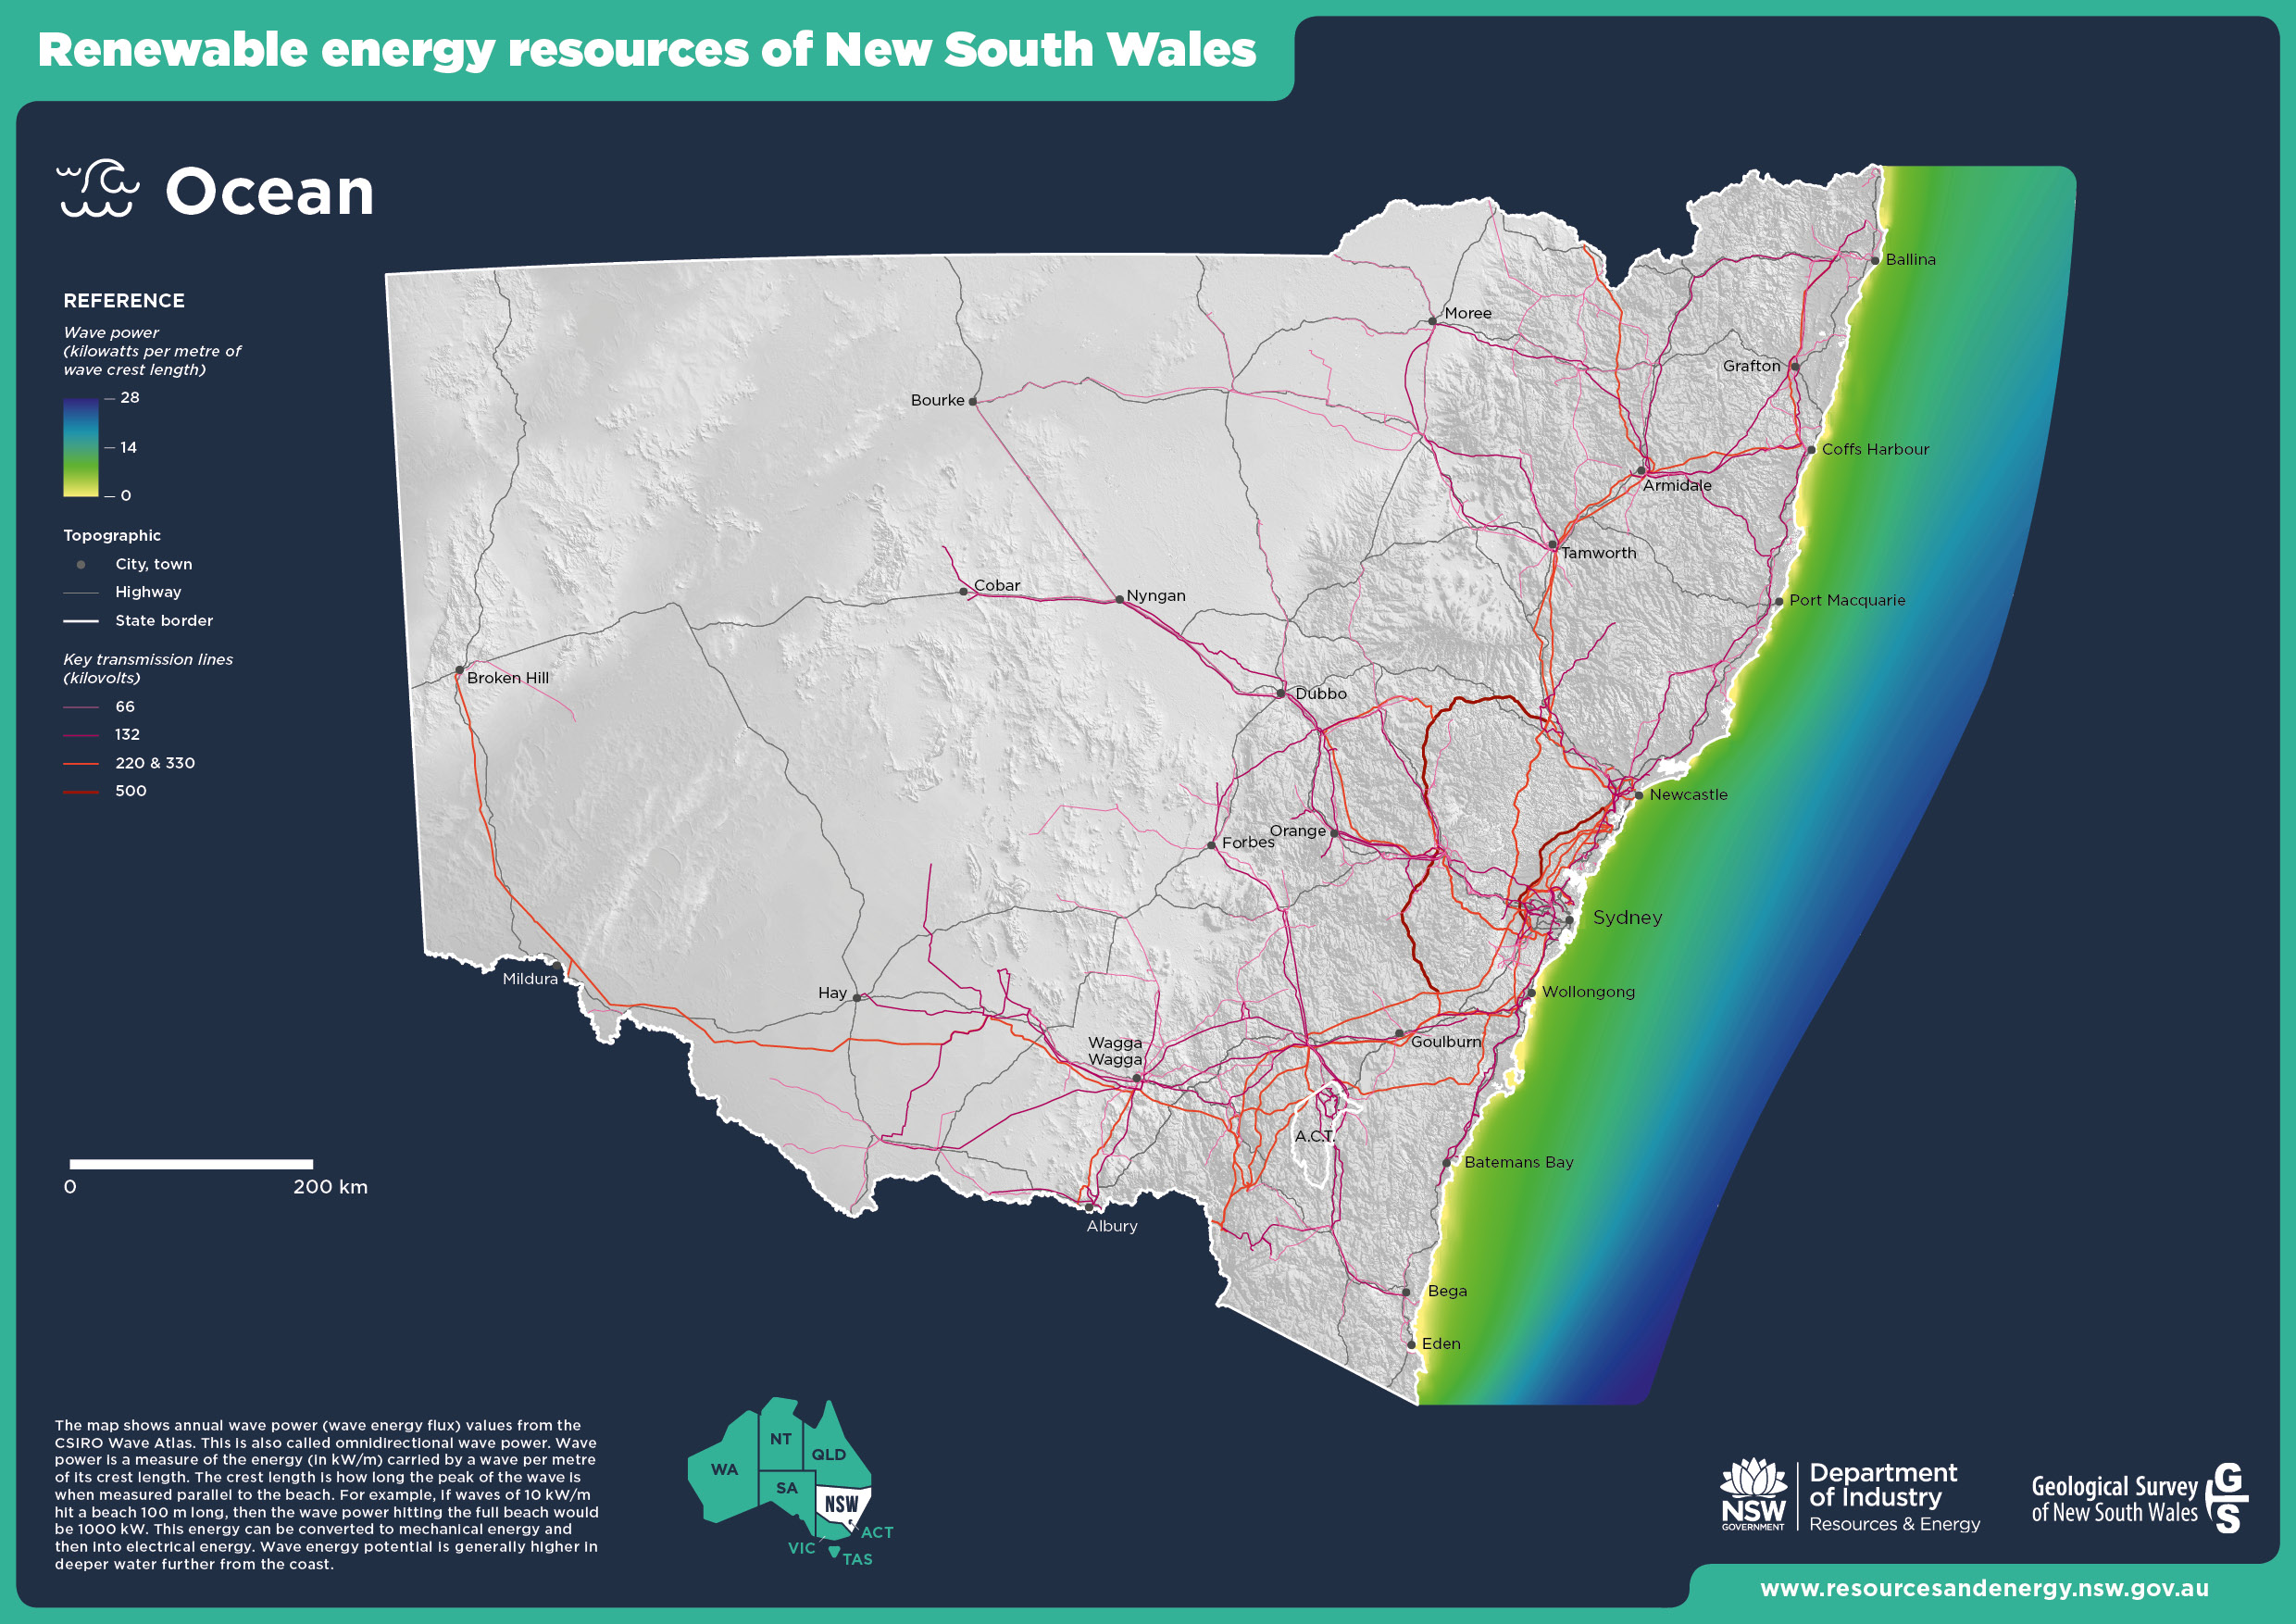 Map of ocean energy resources in NSW